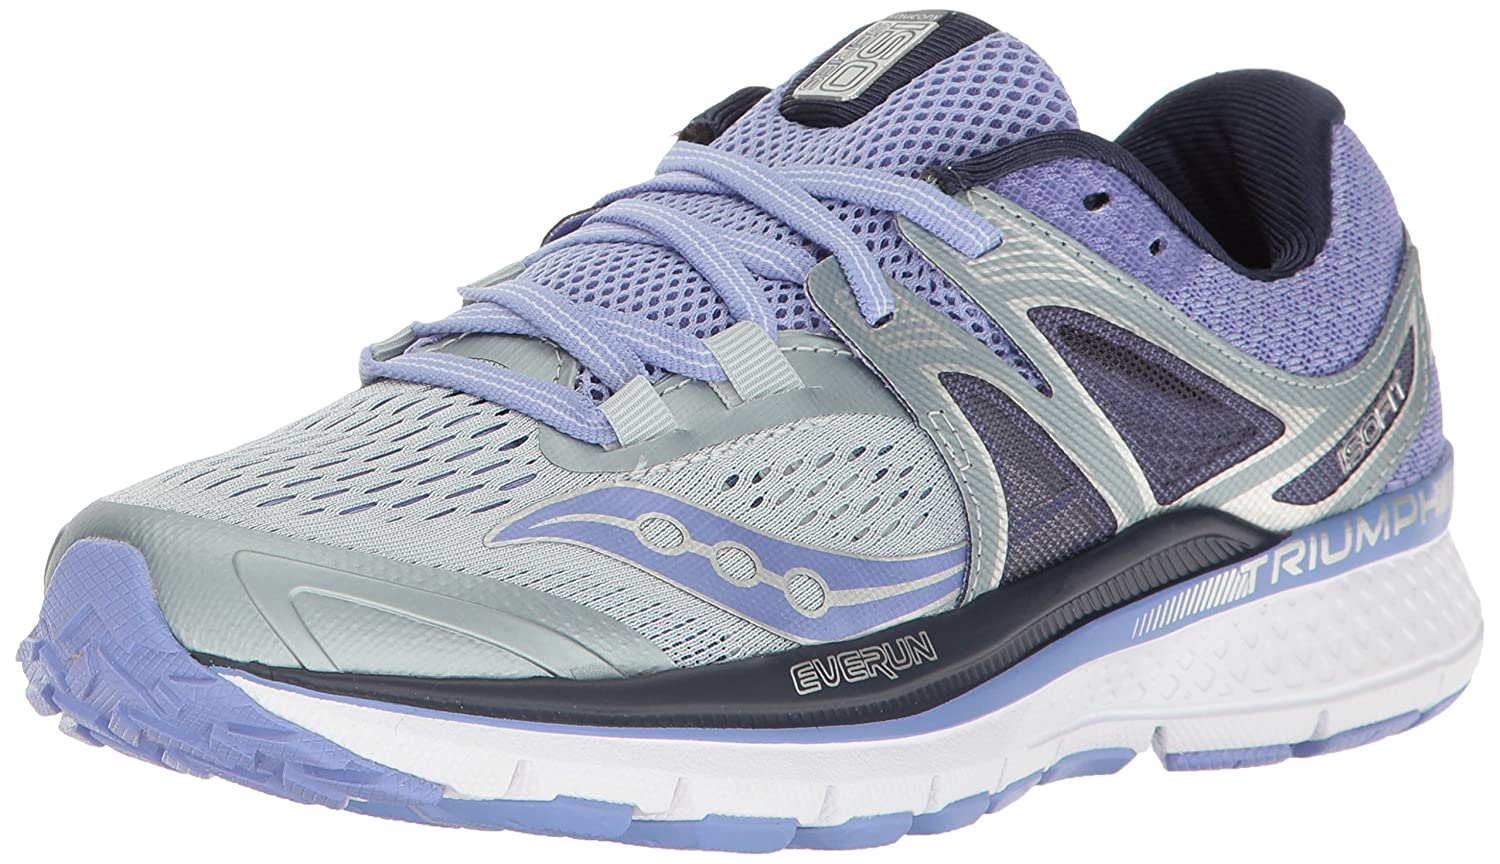 Saucony Women's Triumph Iso 3 Running Sneaker B01MY0XMK8 7 B(M) US|Grey Purple